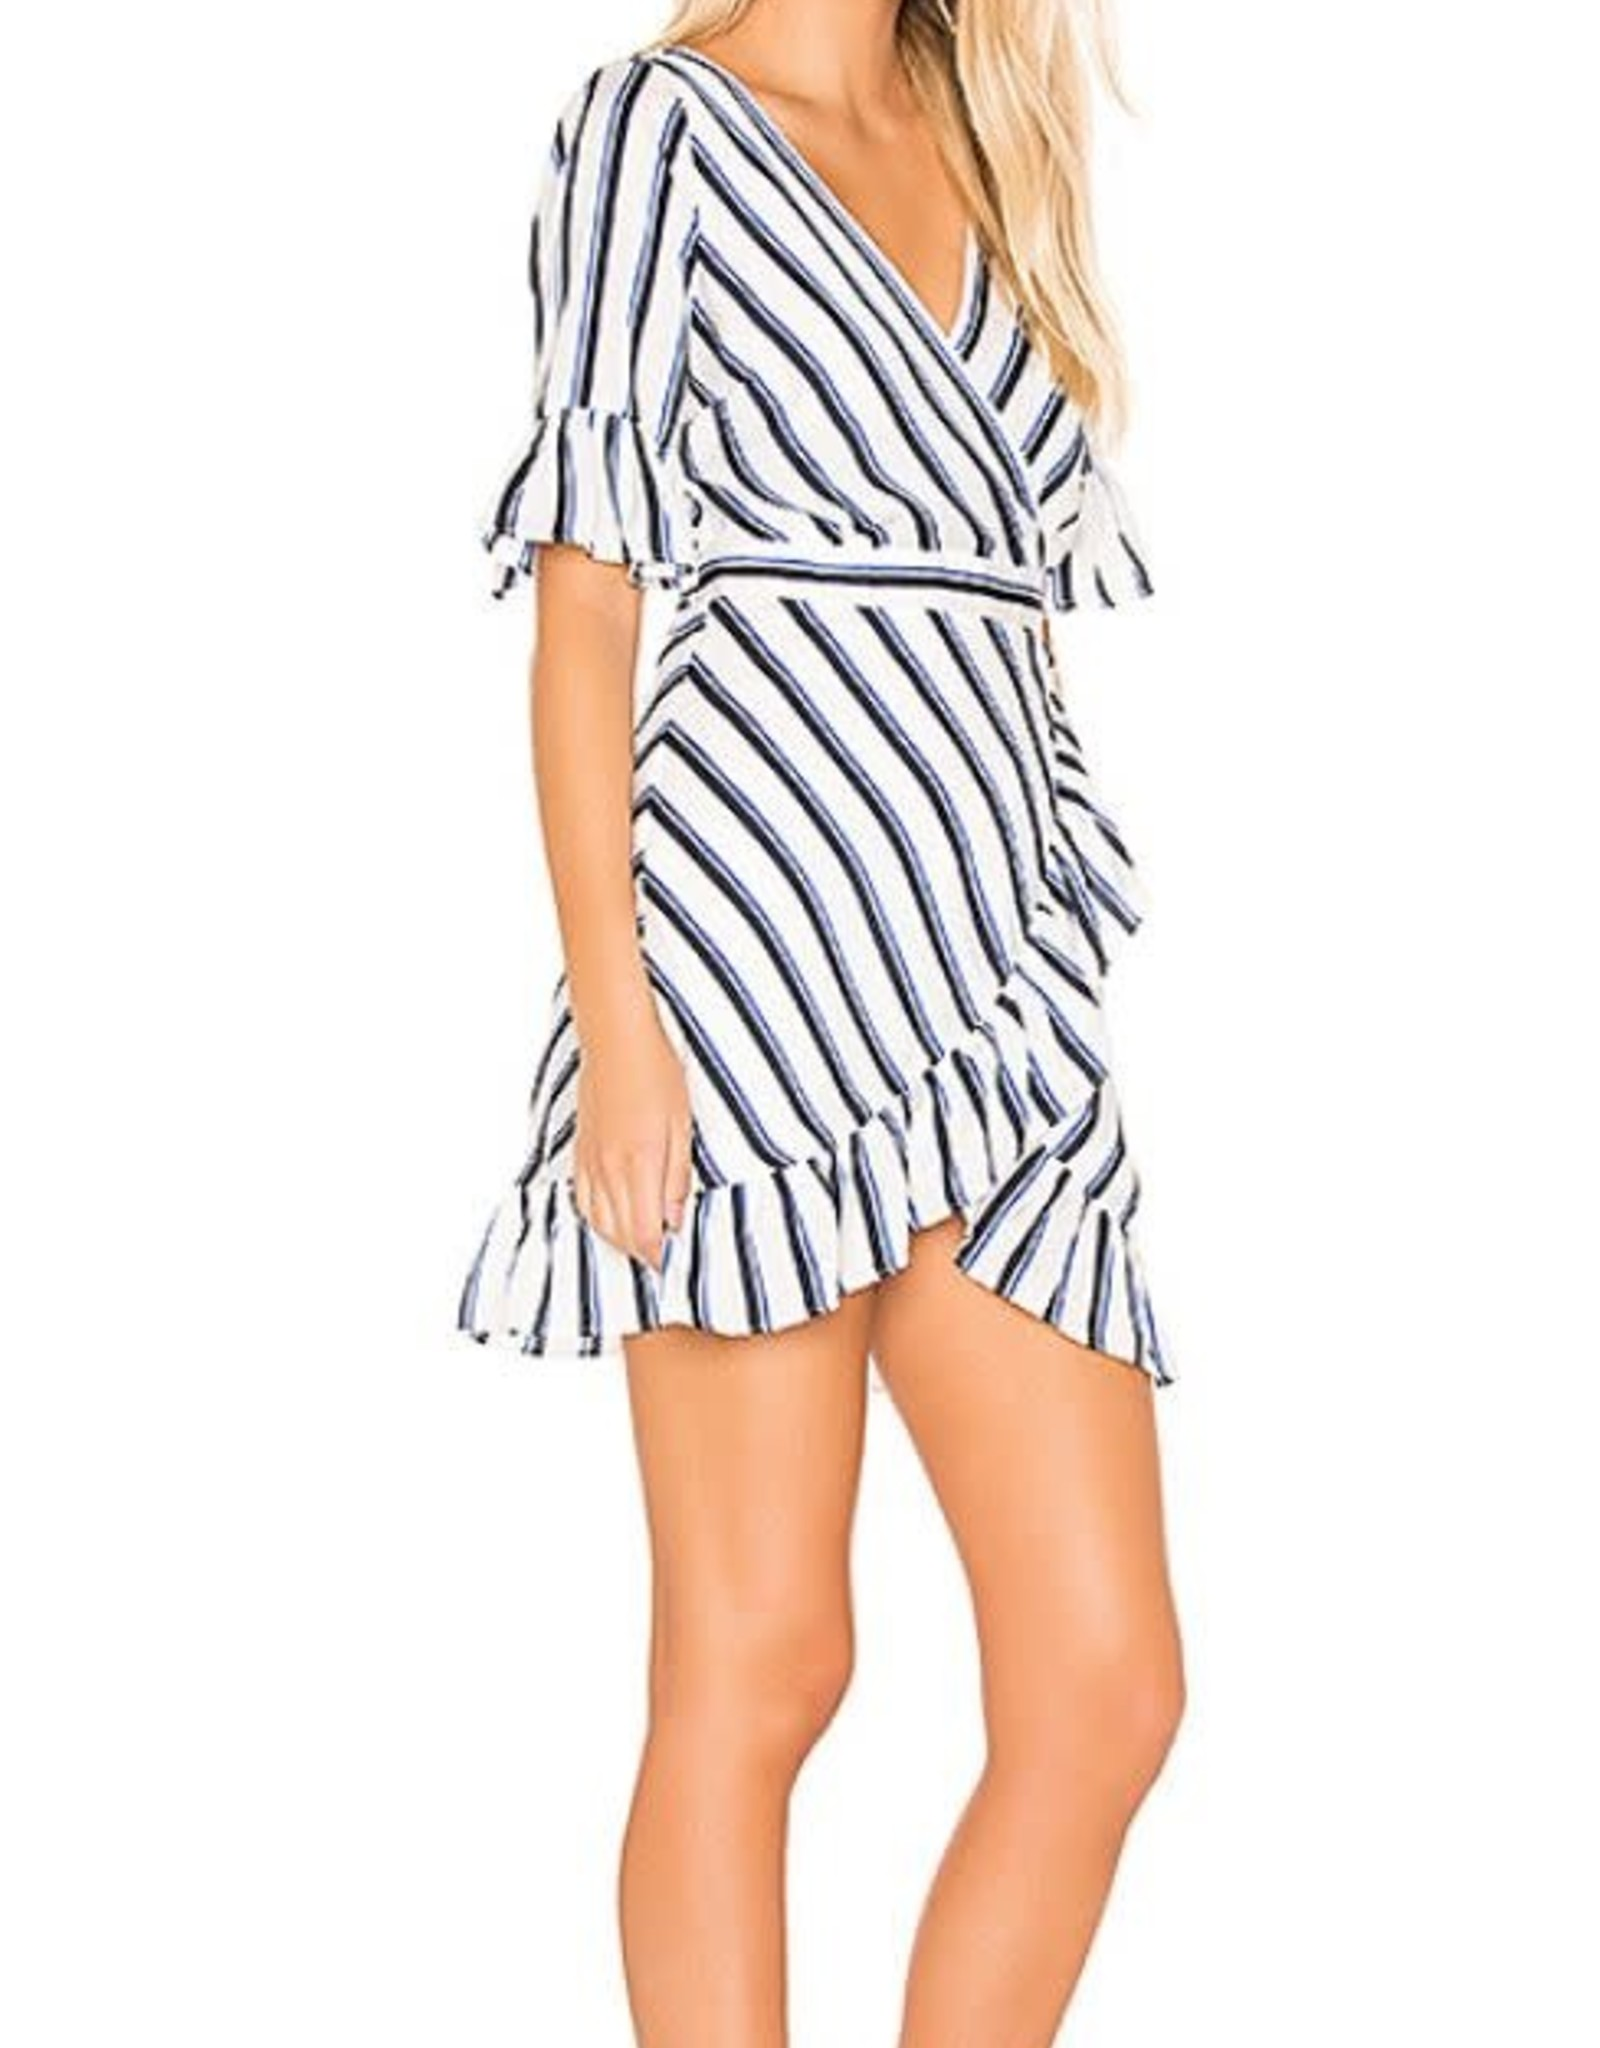 BB Dakota Wht/Blue Striped Ruffle Dress